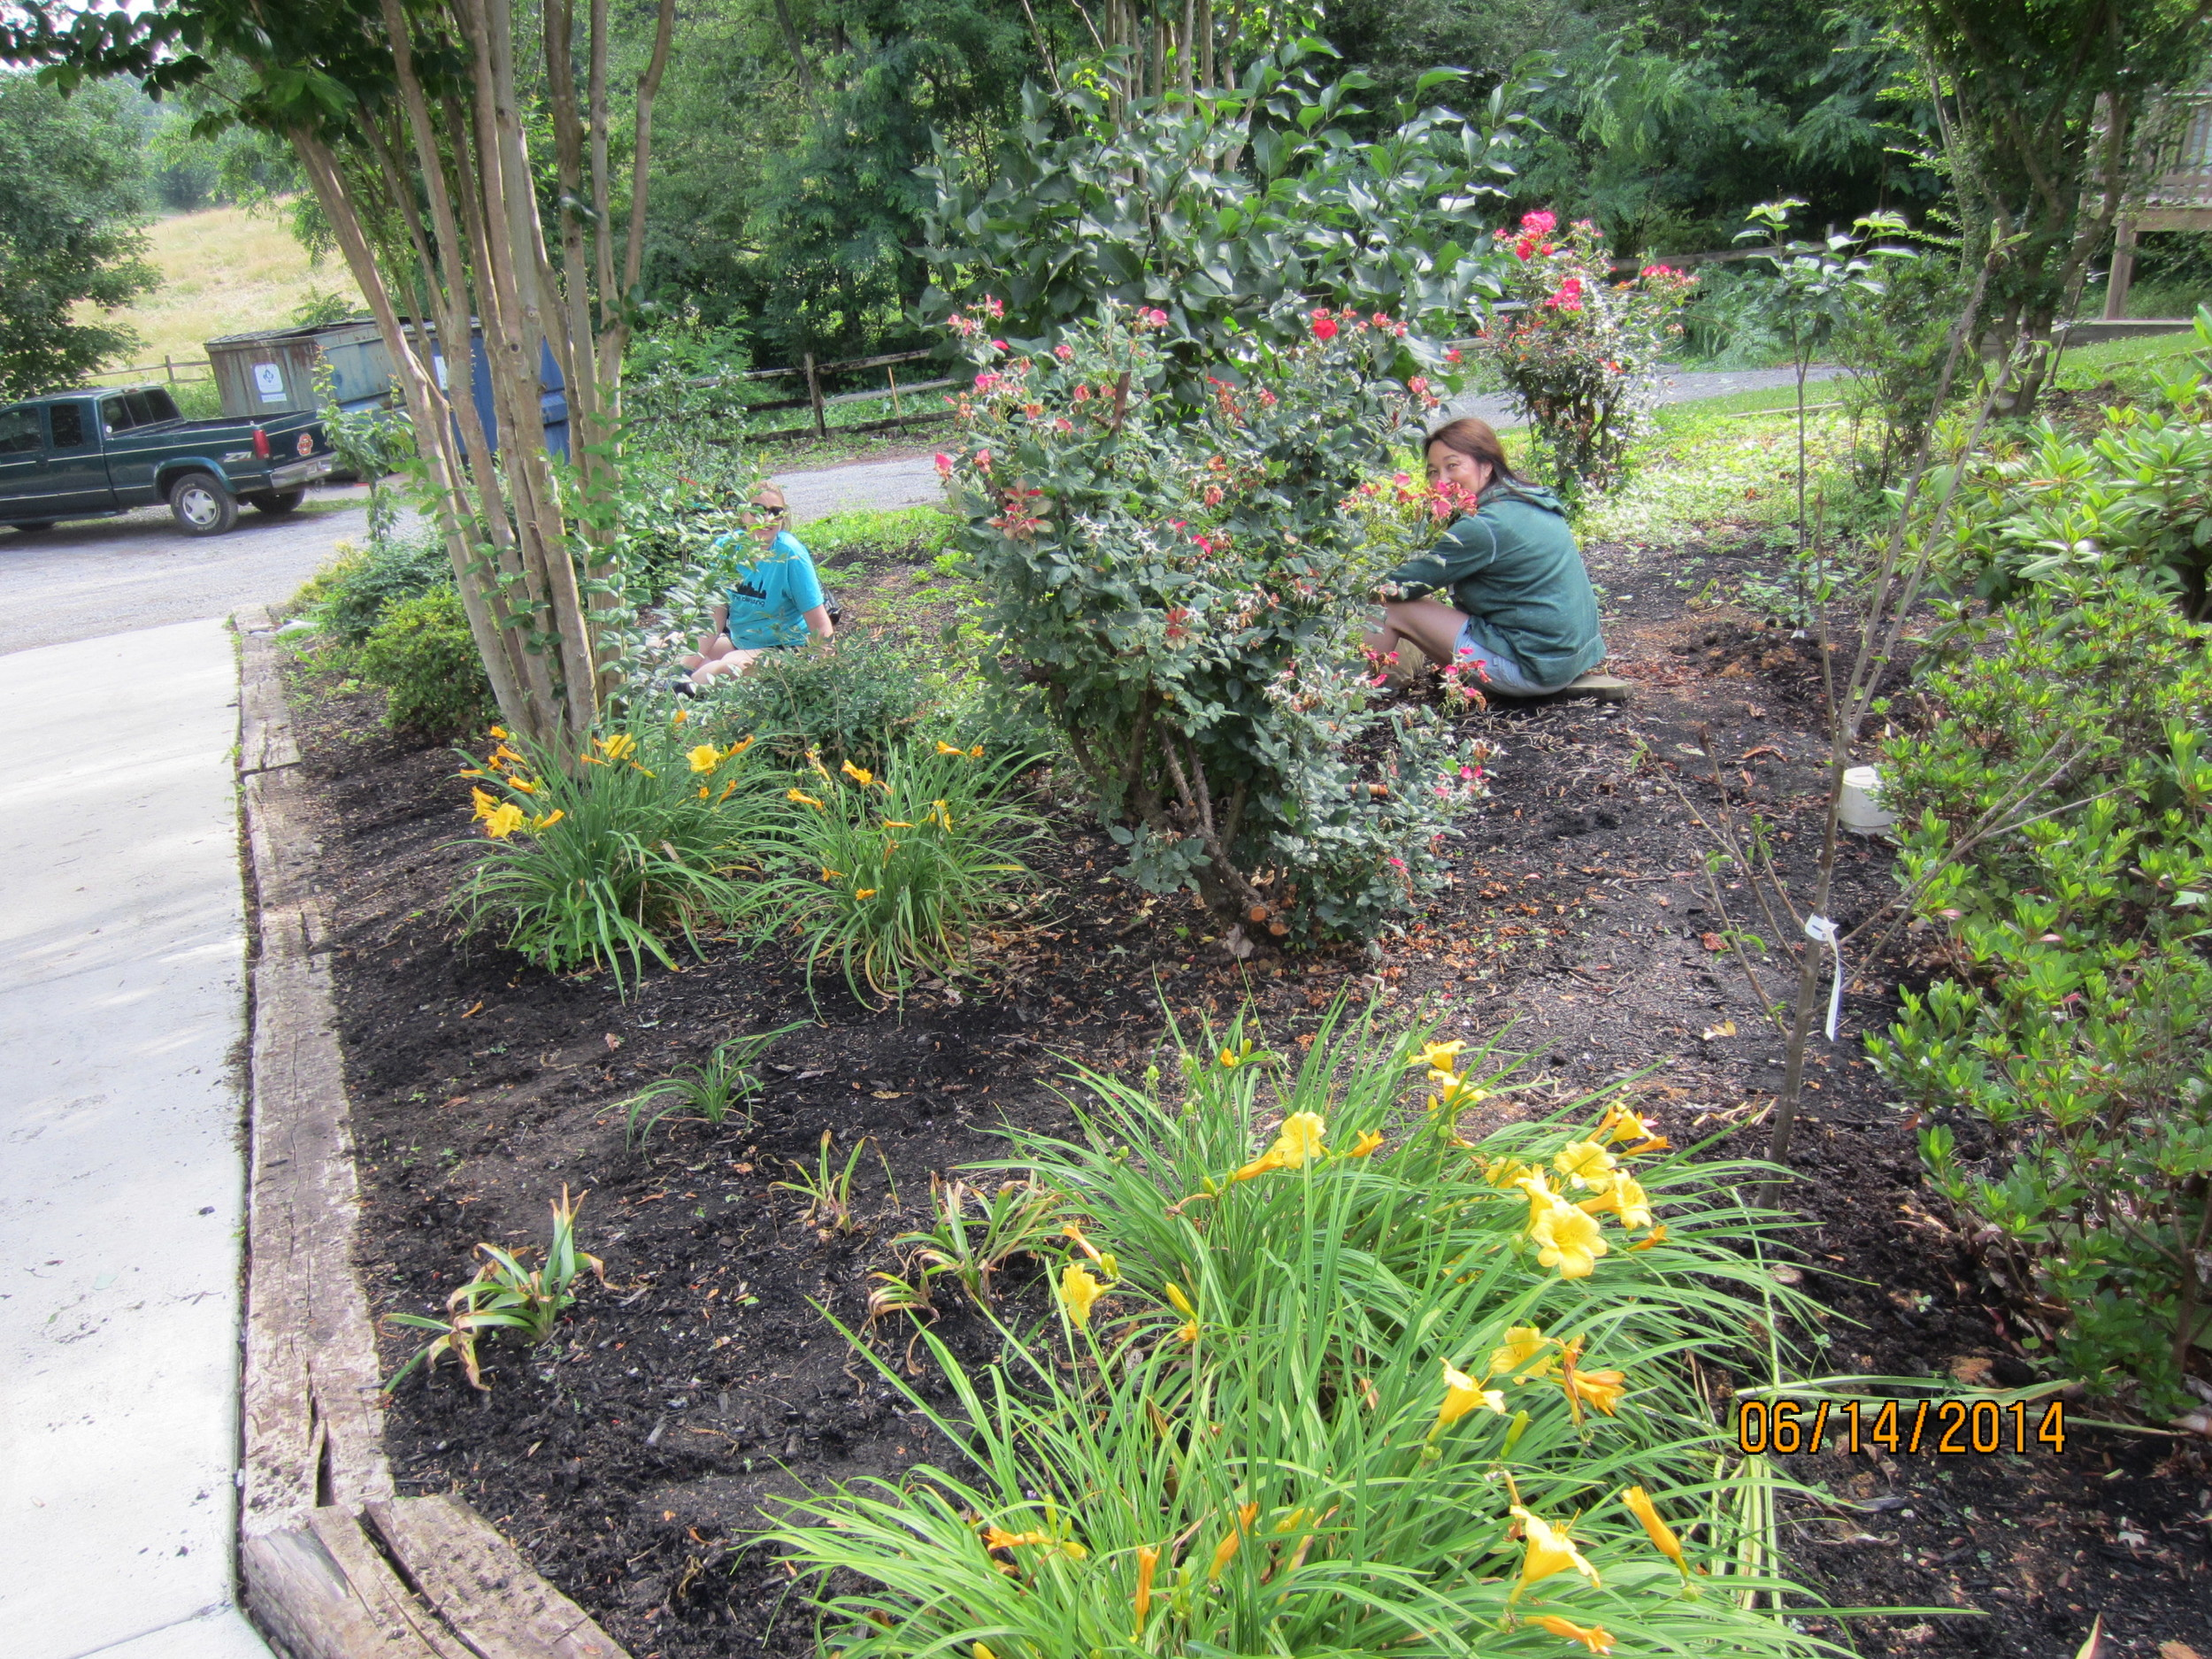 Lauren Pearle and Nellie More continue weeding, getting this bed ready for mulch.